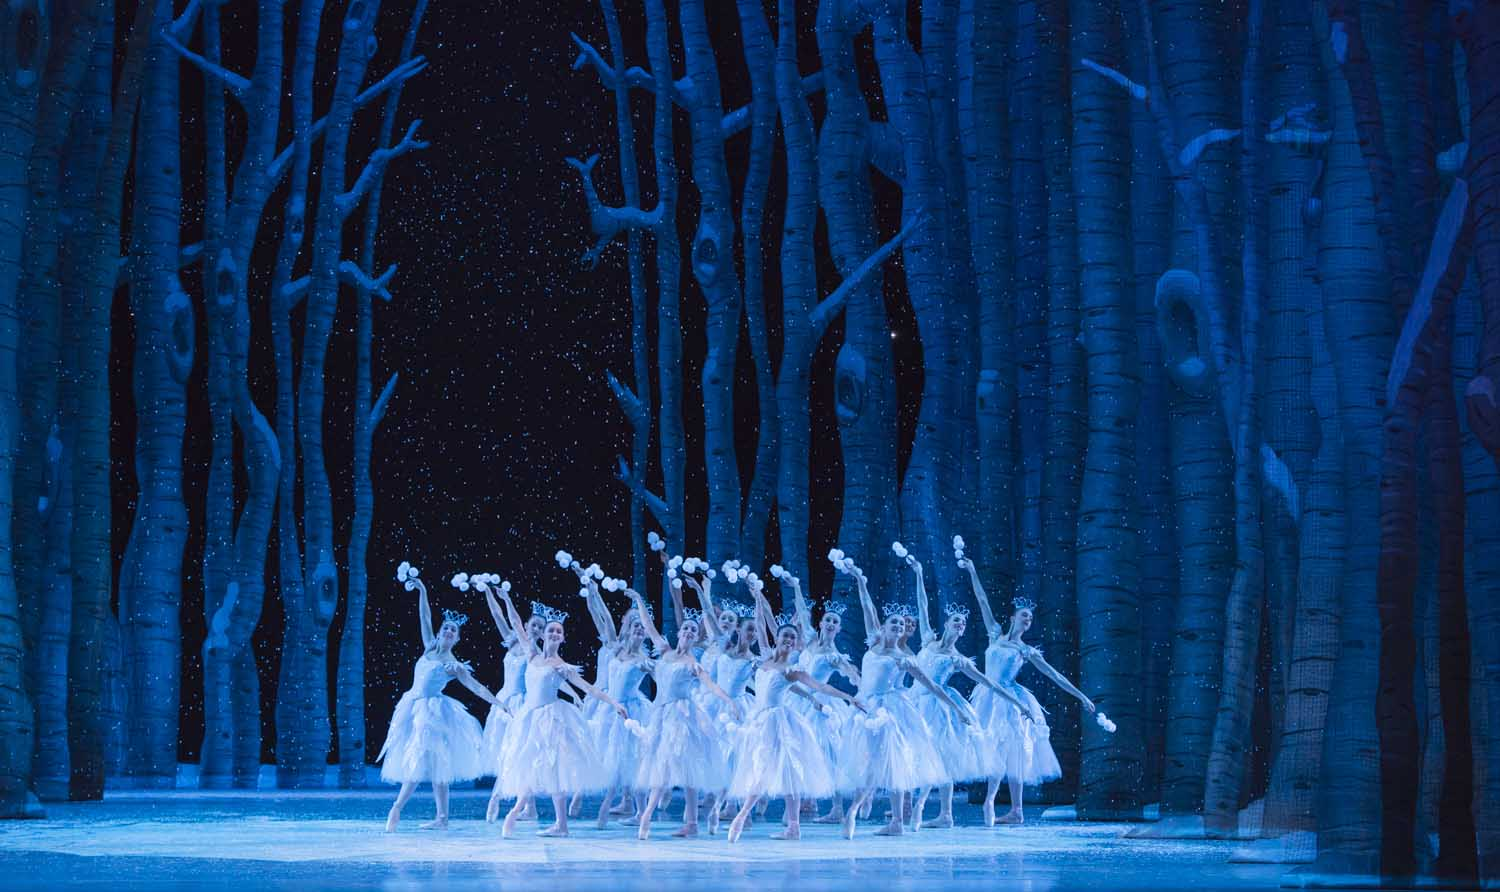 Snow scene from George Balanchine's The Nutcracker™, © The George Balanchine Trust. Photo © Elise Bakketun.